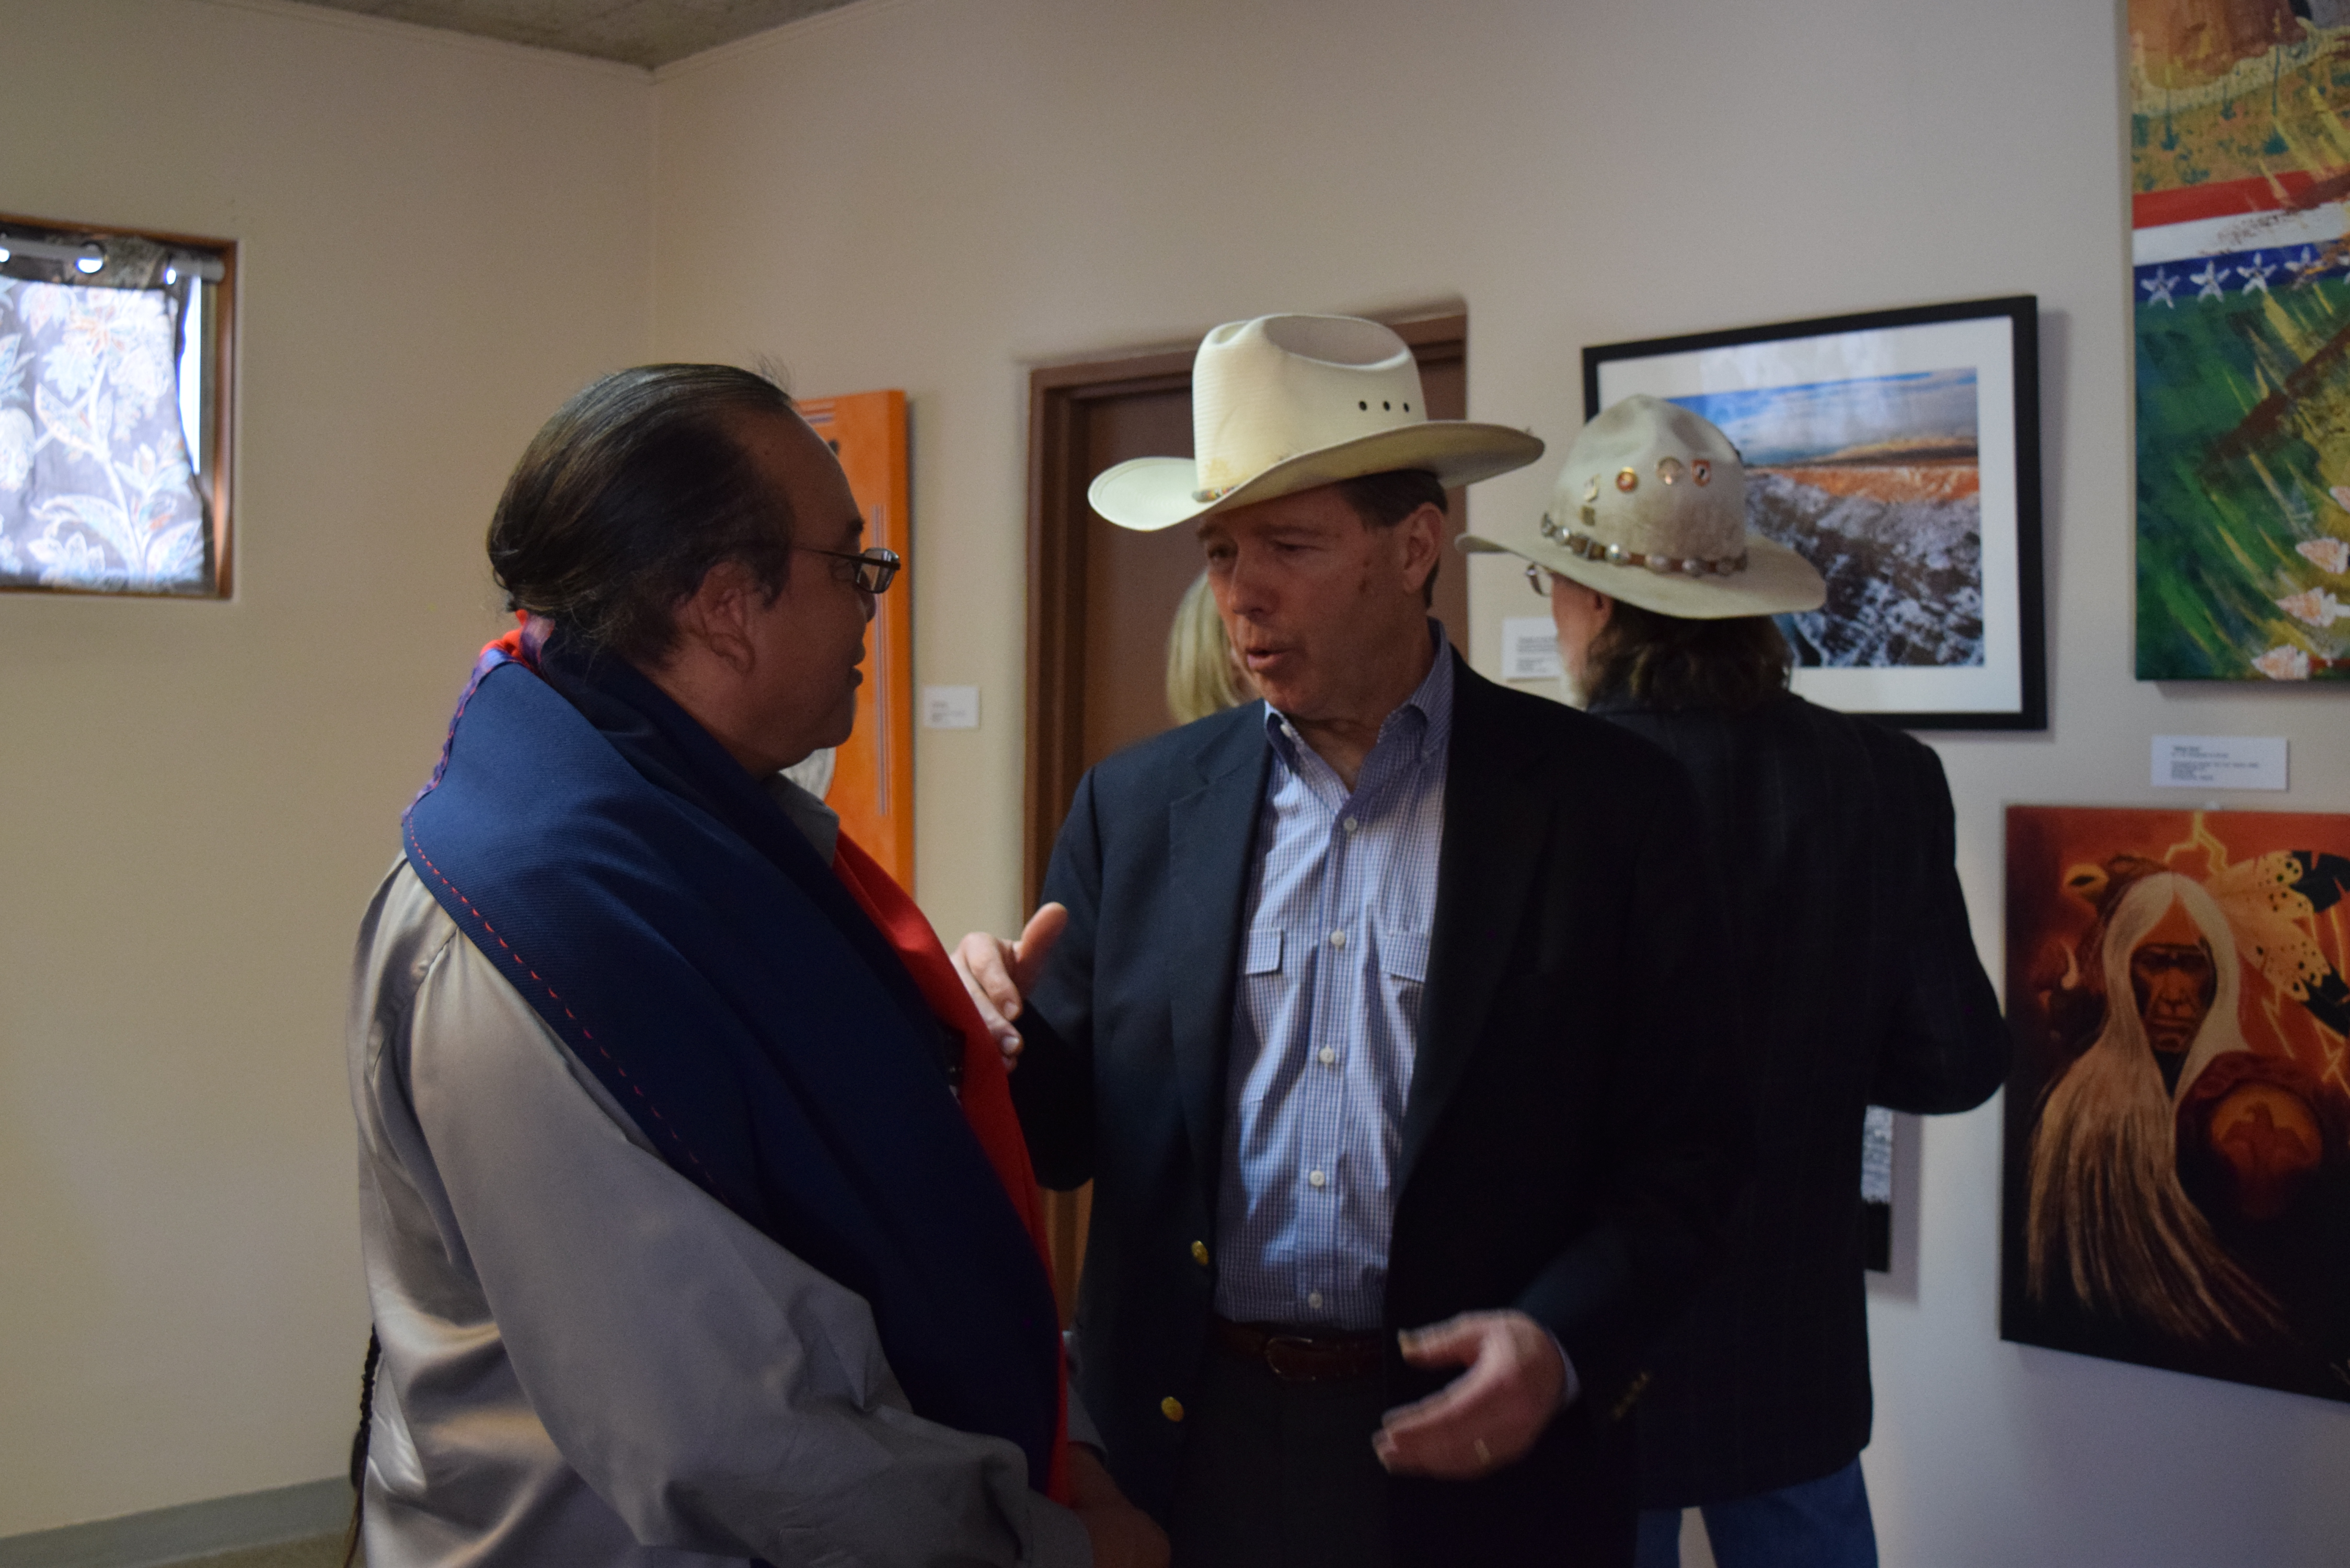 Senator Tom Udall speaking with man wearing large multicolored scarf around his shoulders inside a gallery, others behind